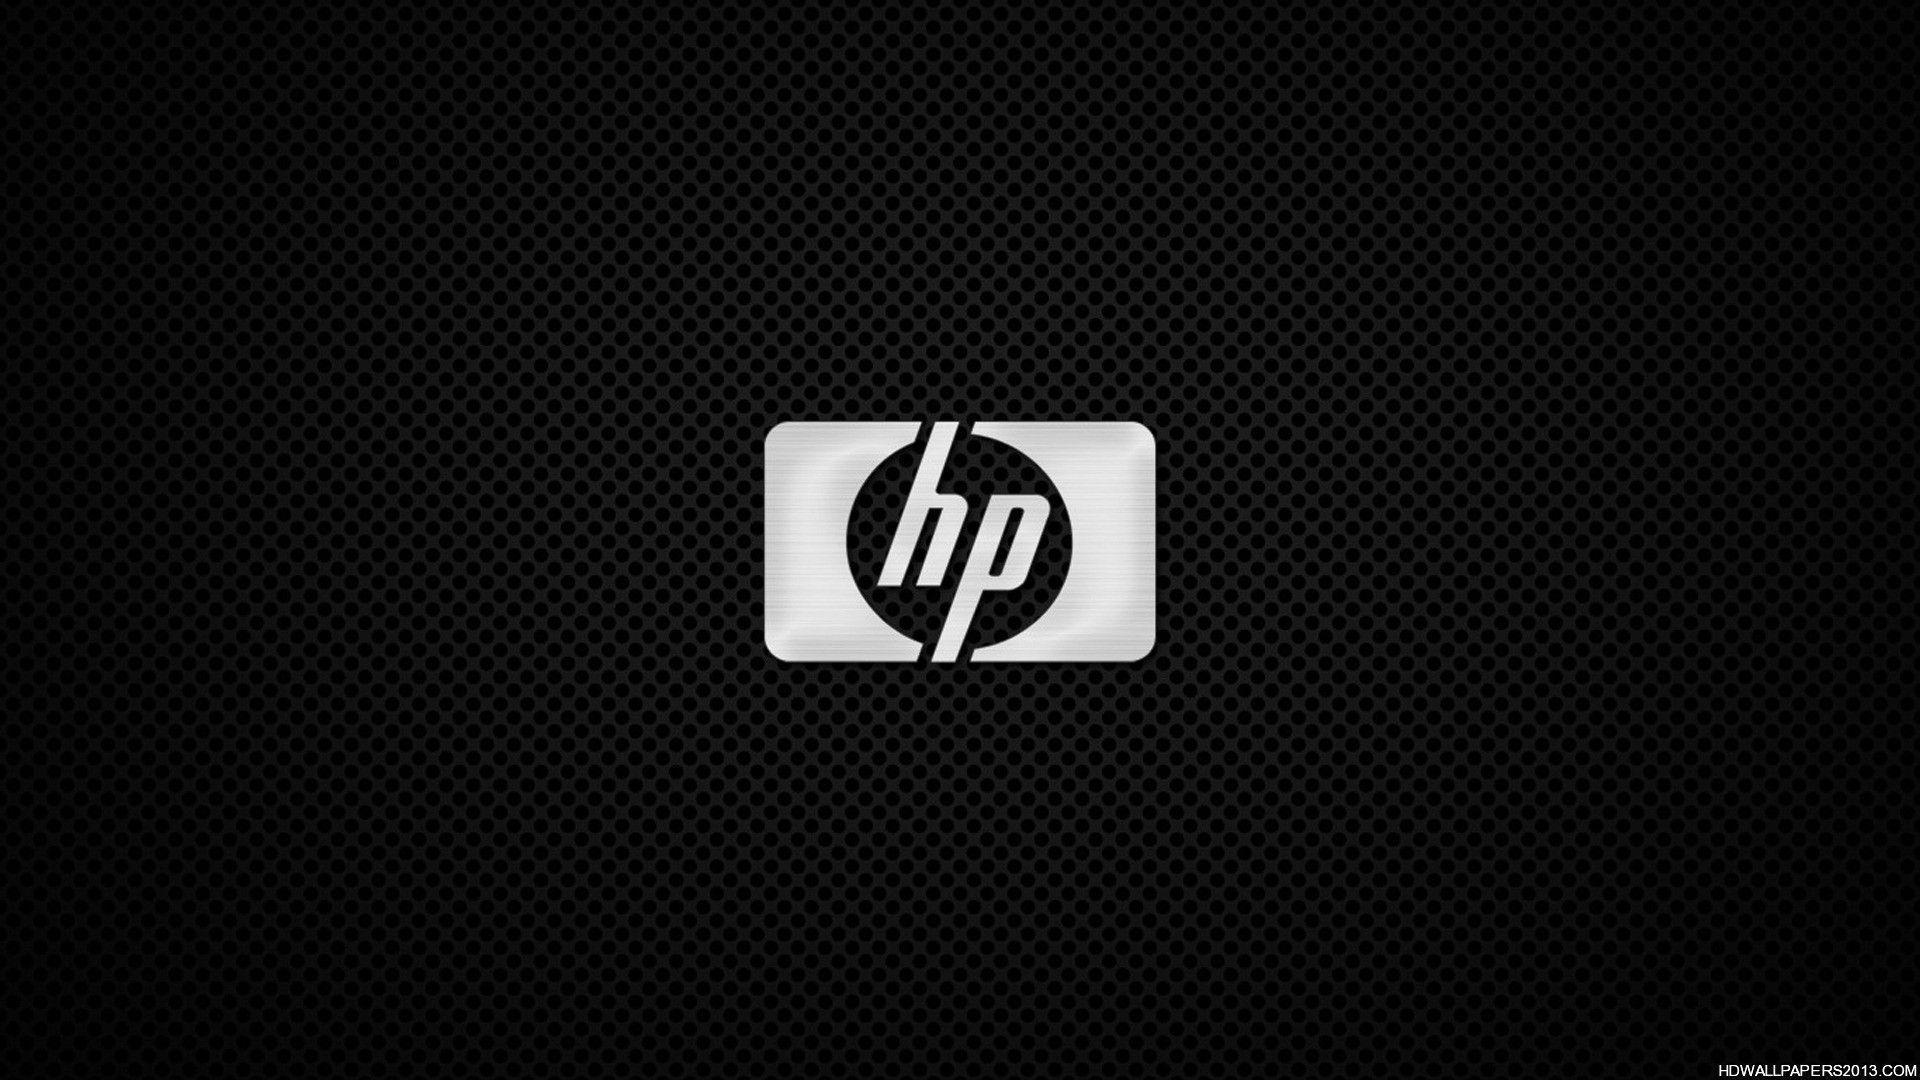 HP Wallpapers - Wallpaper Cave